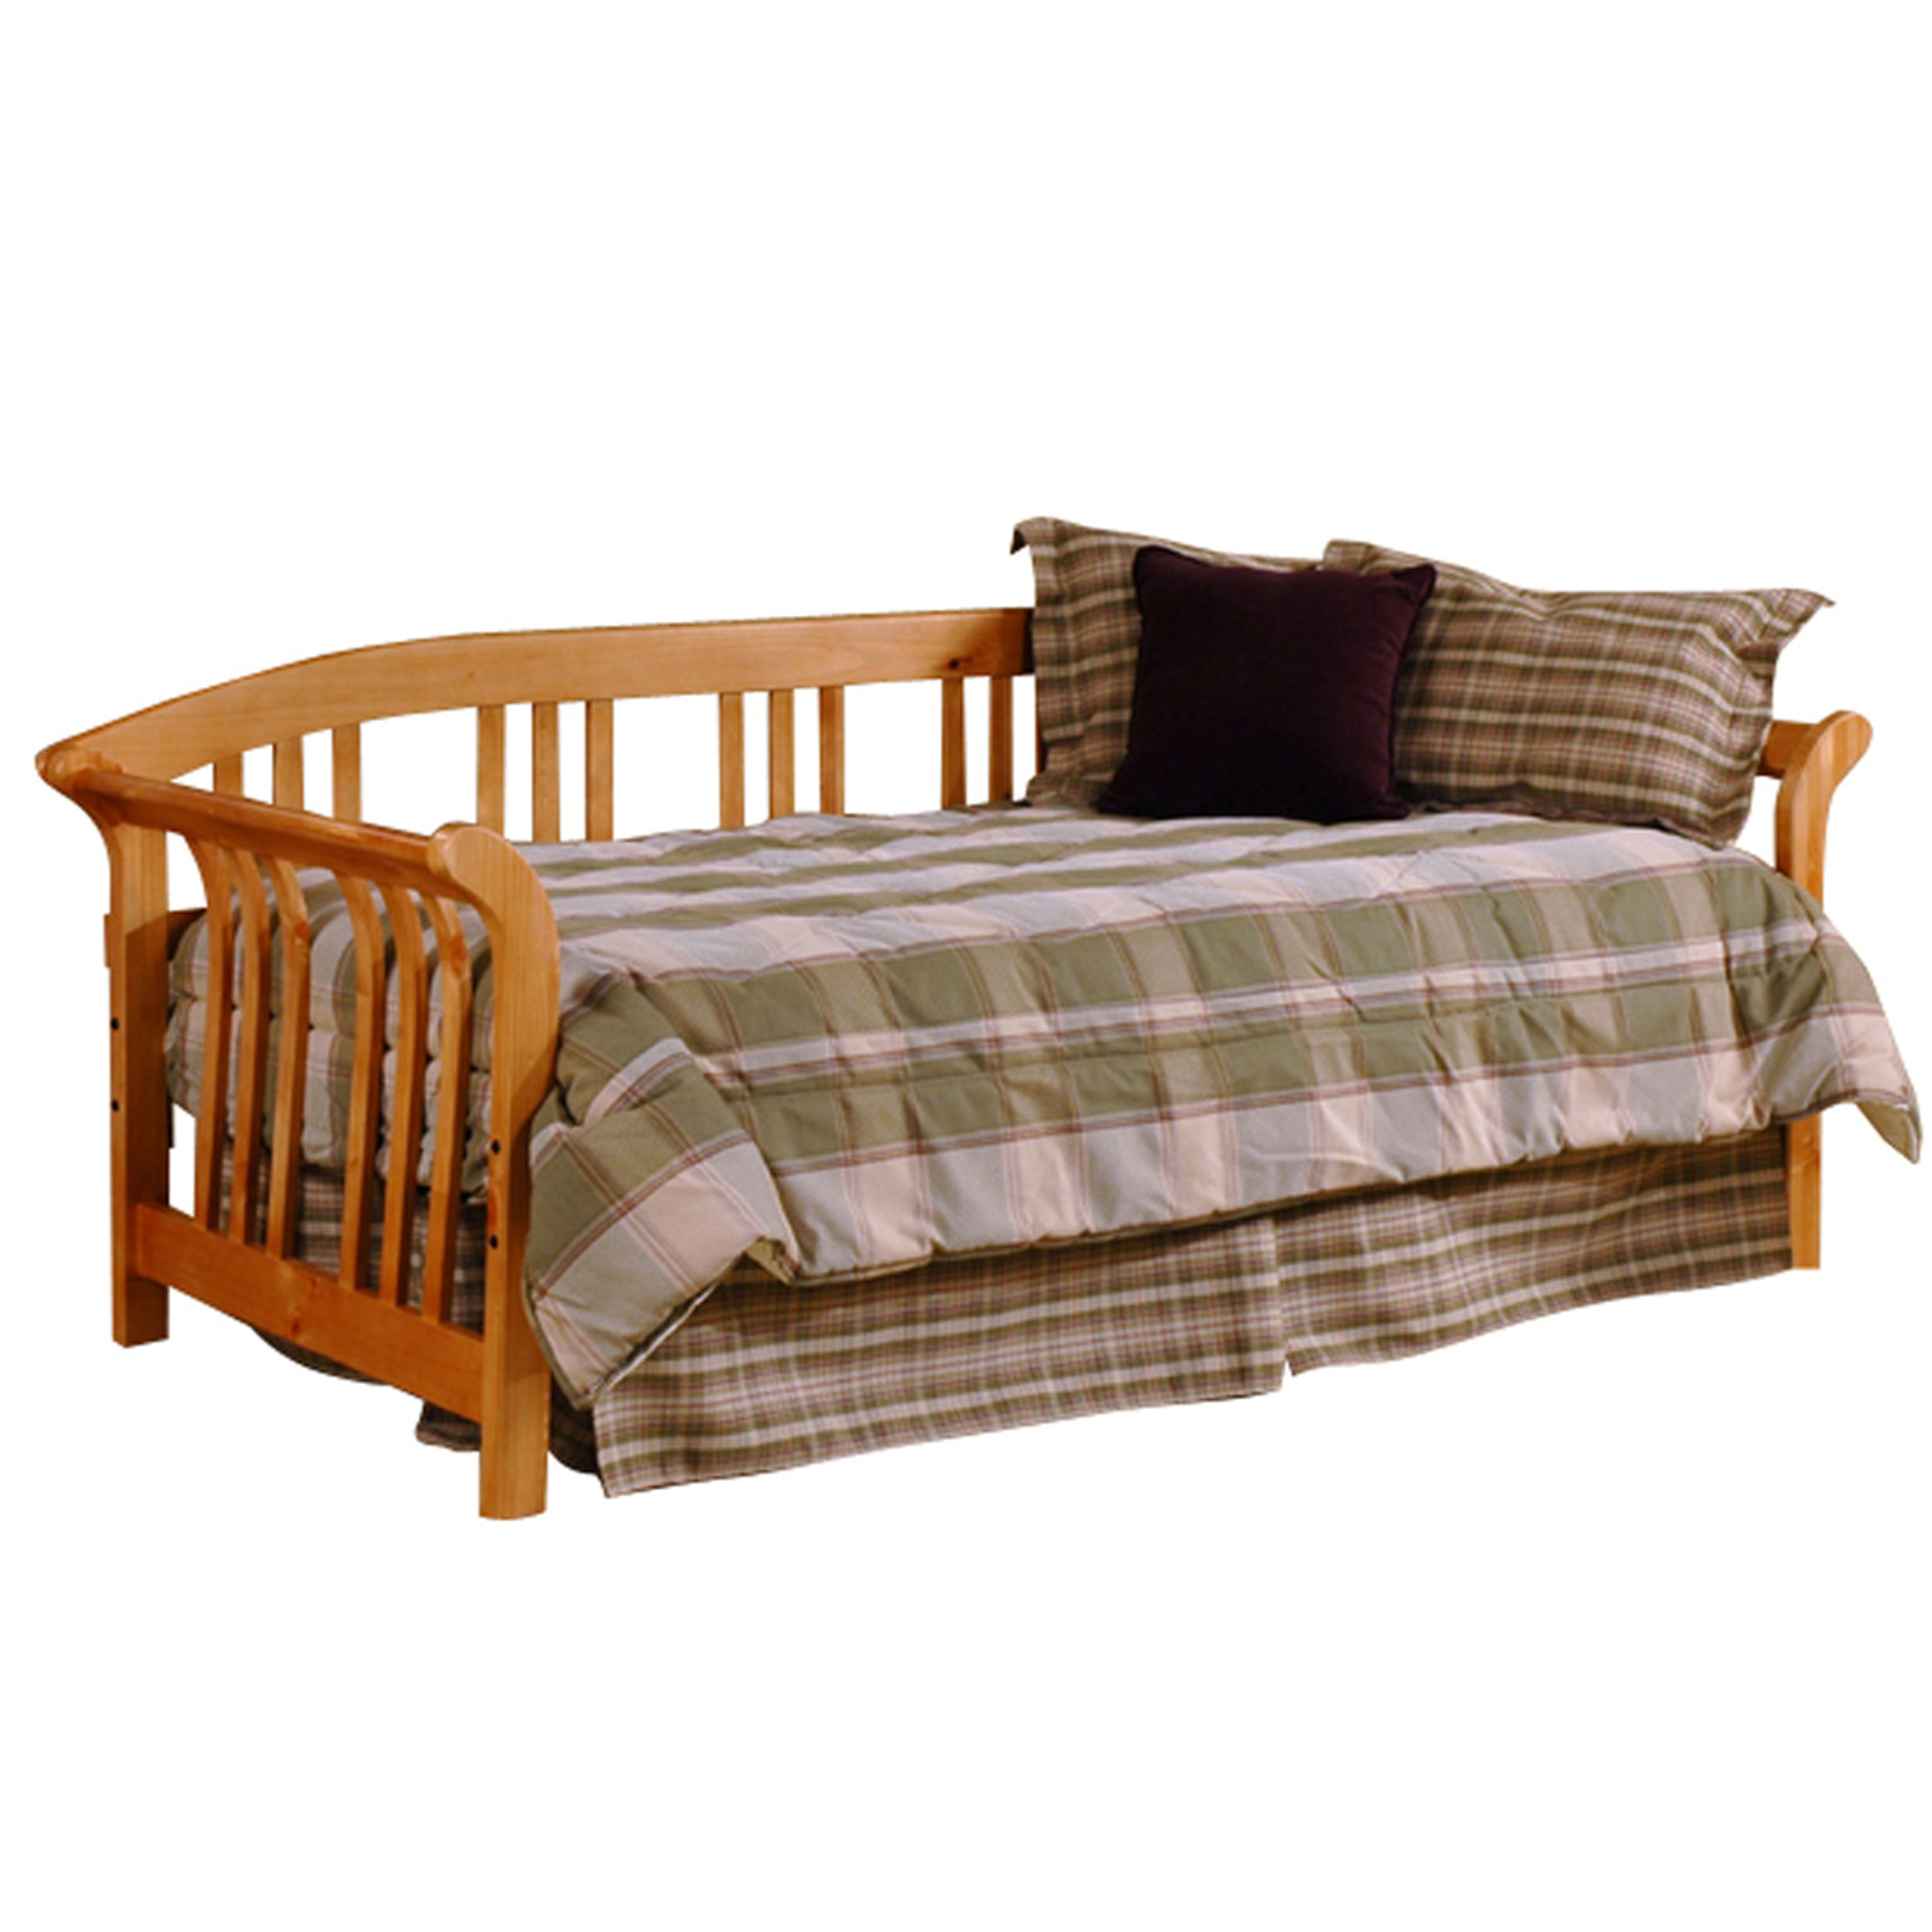 Hillsdale Daybeds Daybed w/Suspension Deck and Trundle - Item Number: 1104DBLHTR